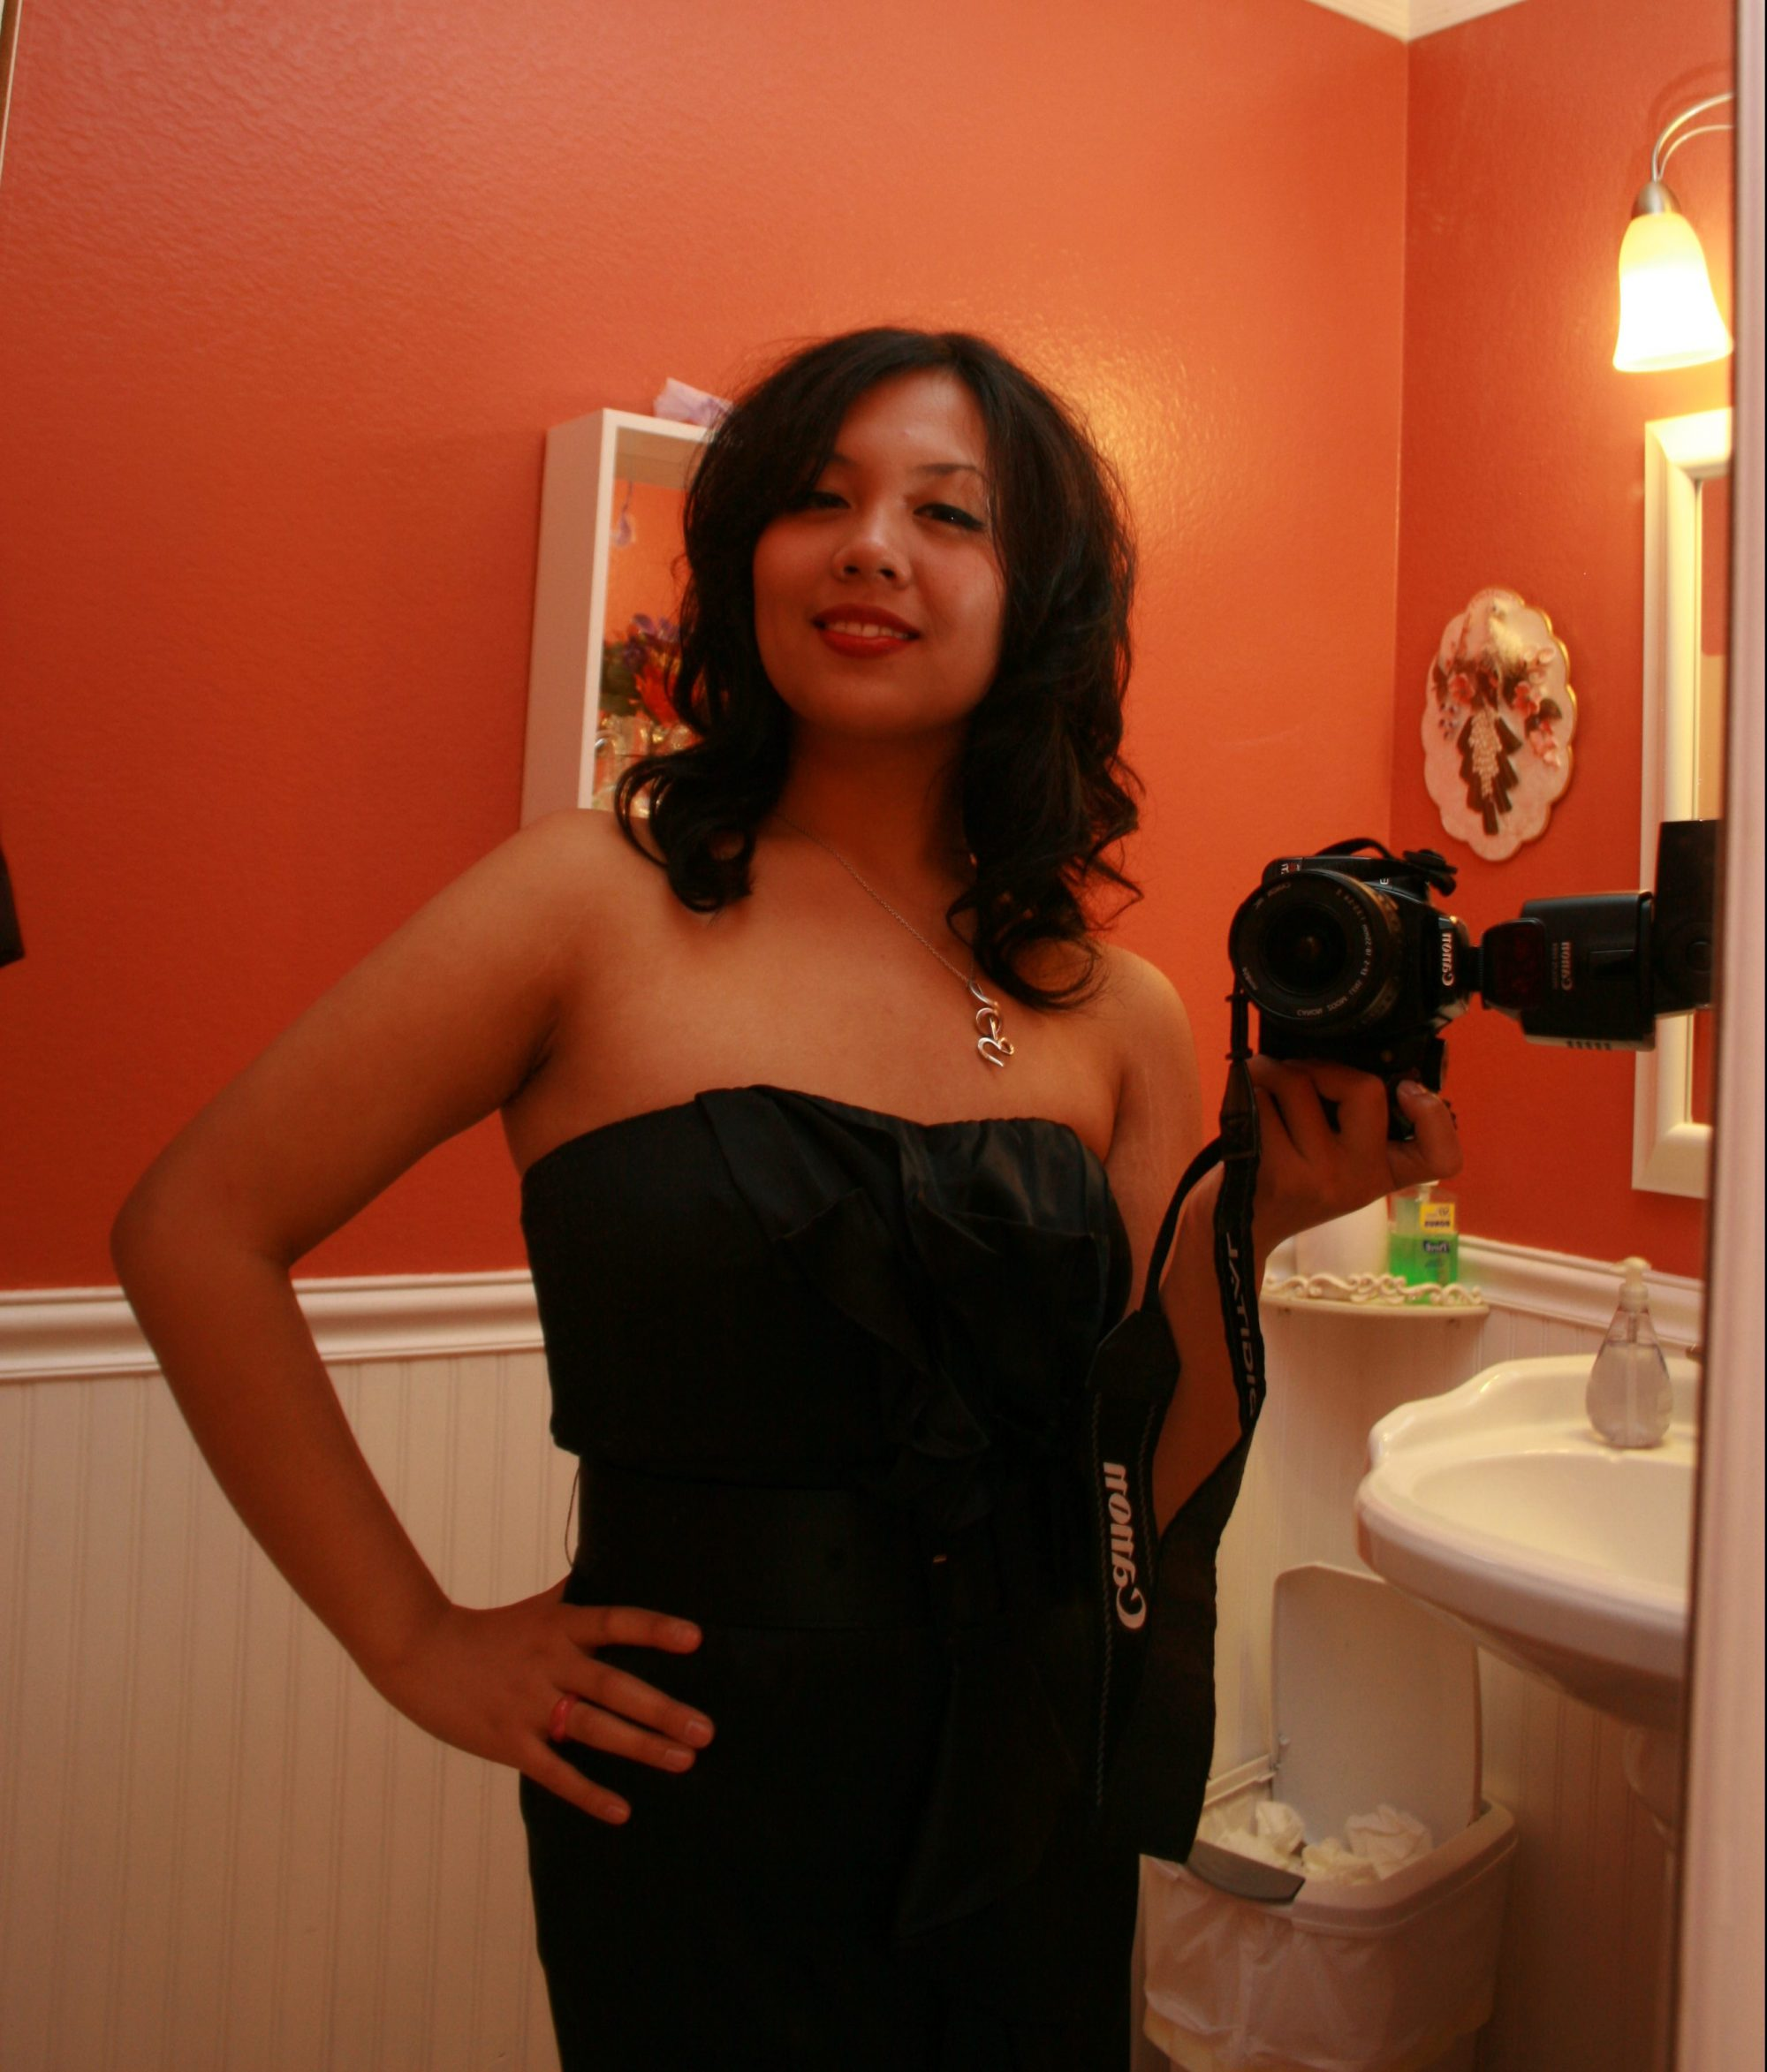 Age 16. For a New Year's party, I refused to eat the entire evening so I could fit in this dress without guilt.